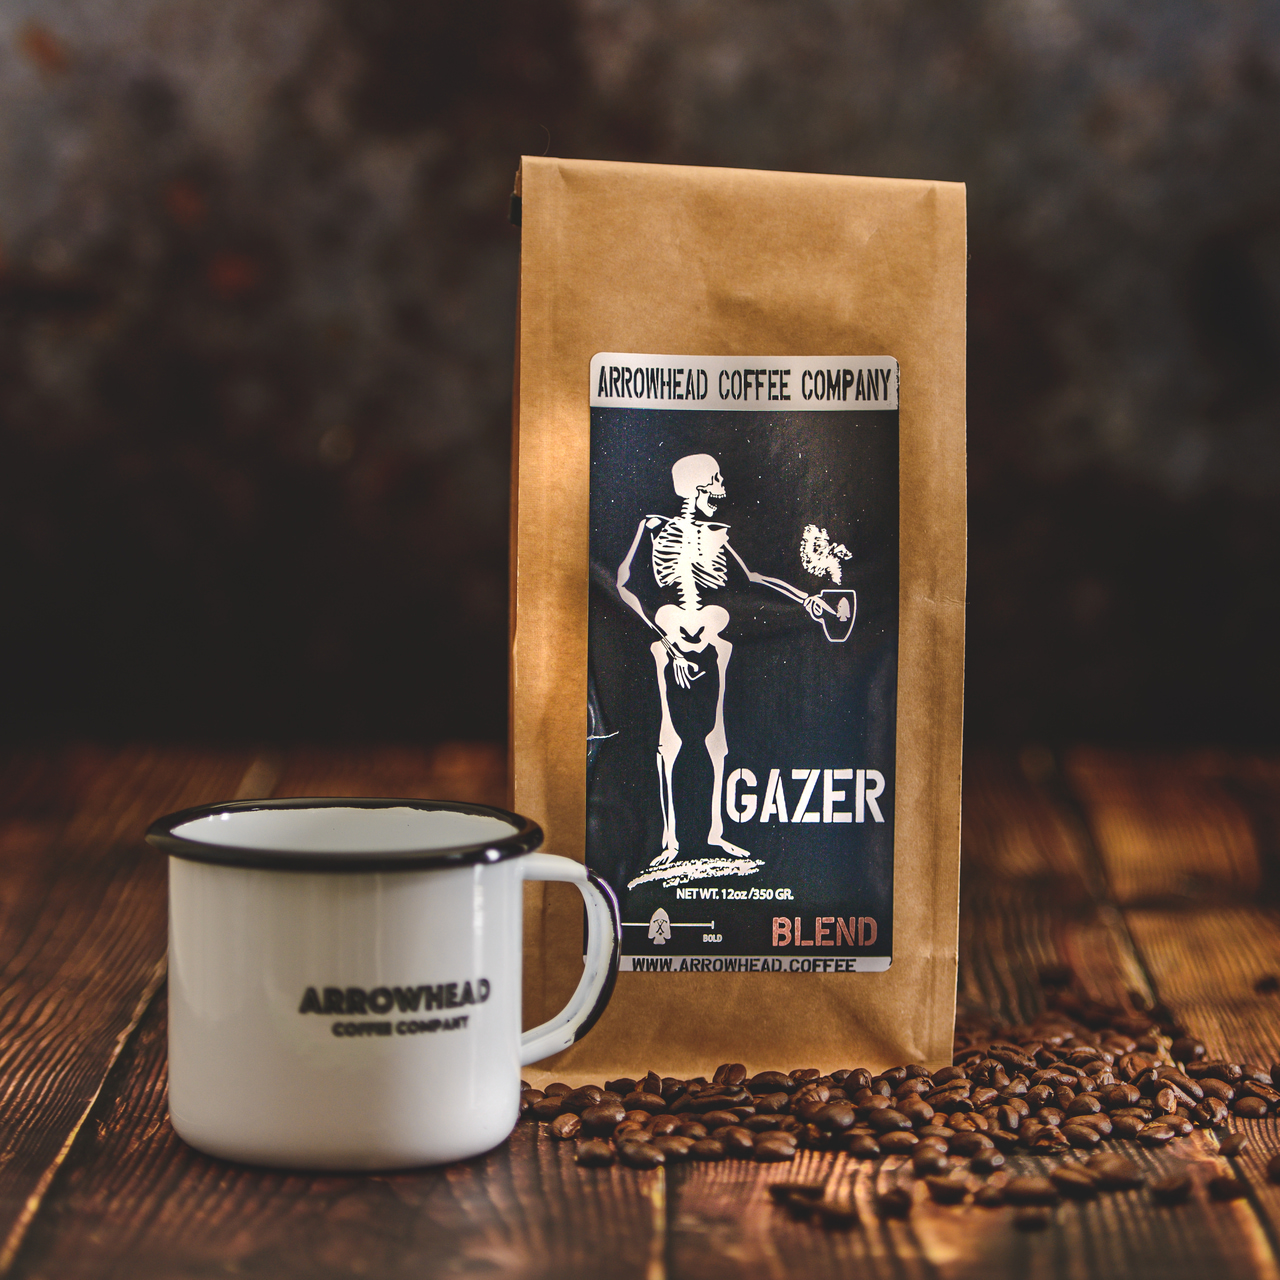 article, best coffee beans toronto, and best coffee canada reddit image